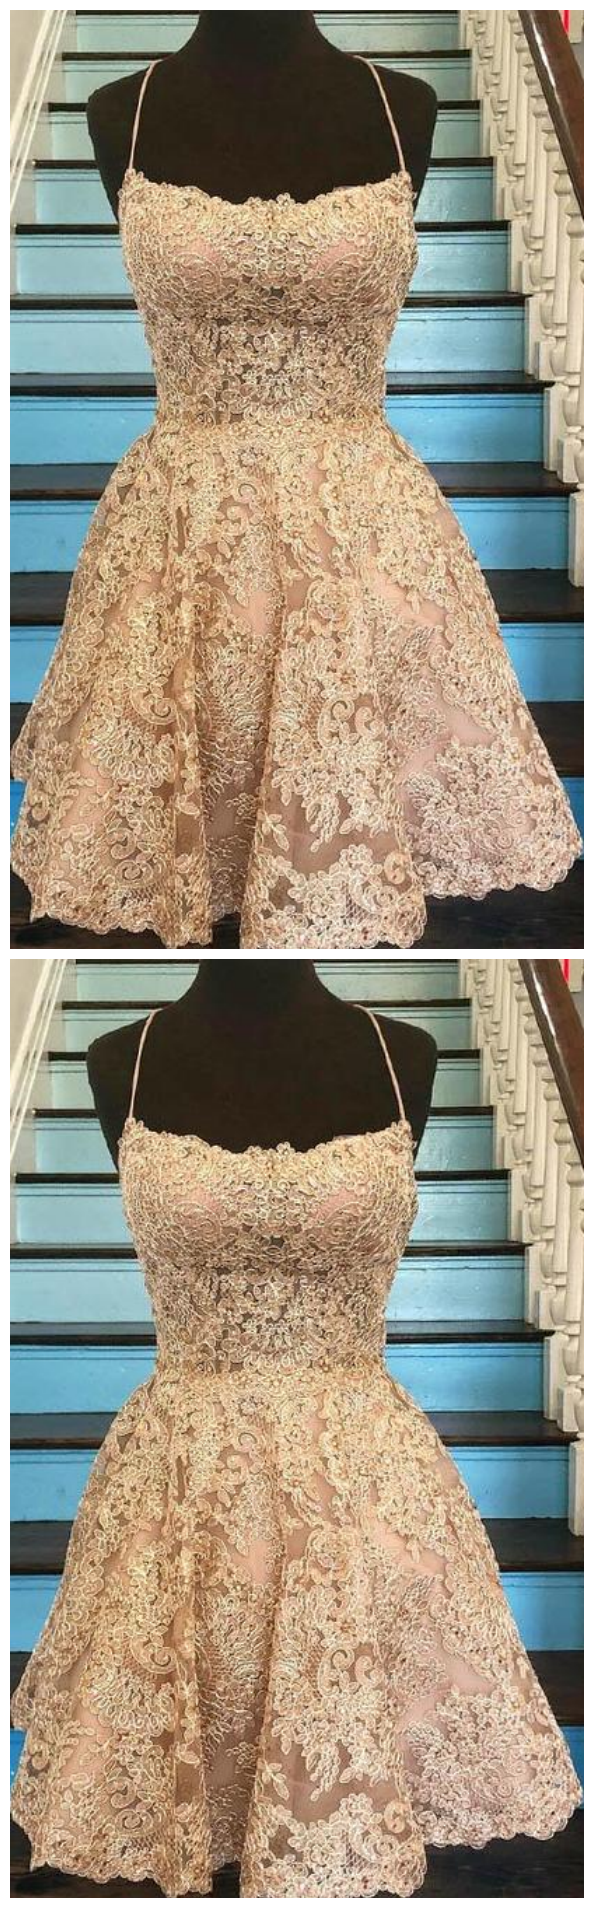 Sleeveless Lace Homecoming Dresses,A Line Backless Cocktail Dresses